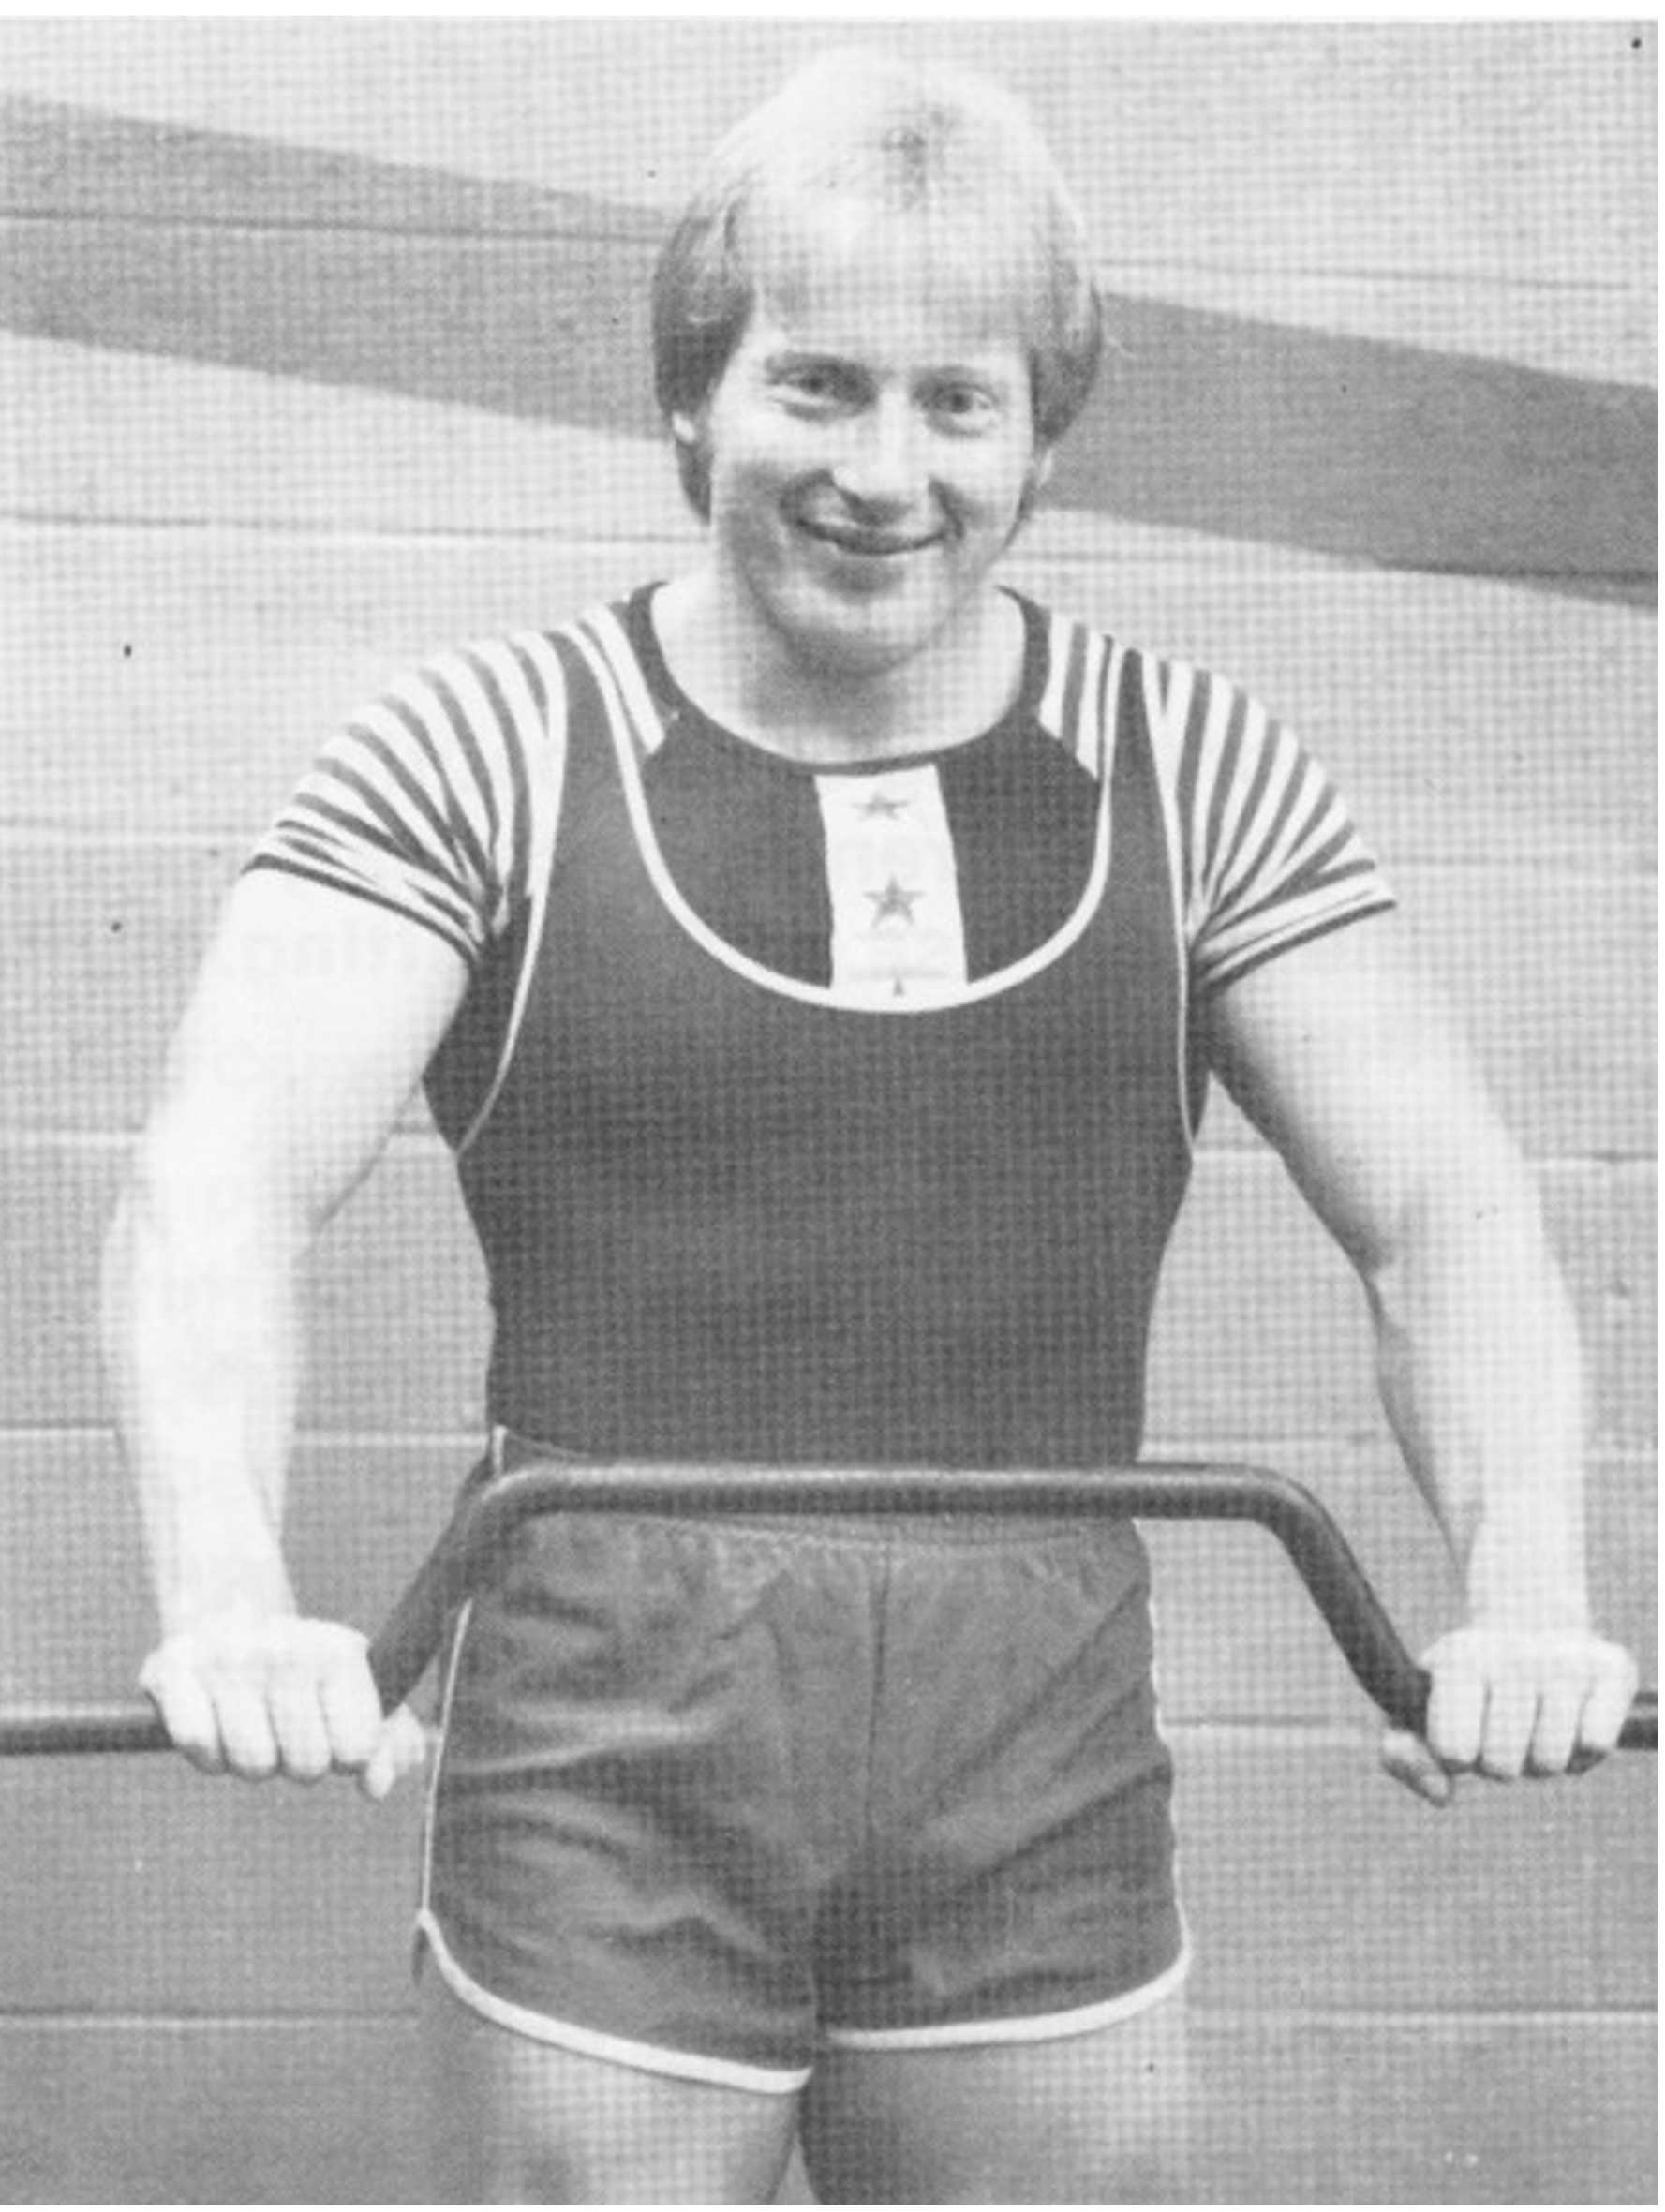 Ten Bench Press Tips and Tricks of the Trade article by Marty Gallagher featuring powerlifter Mike MacDonald